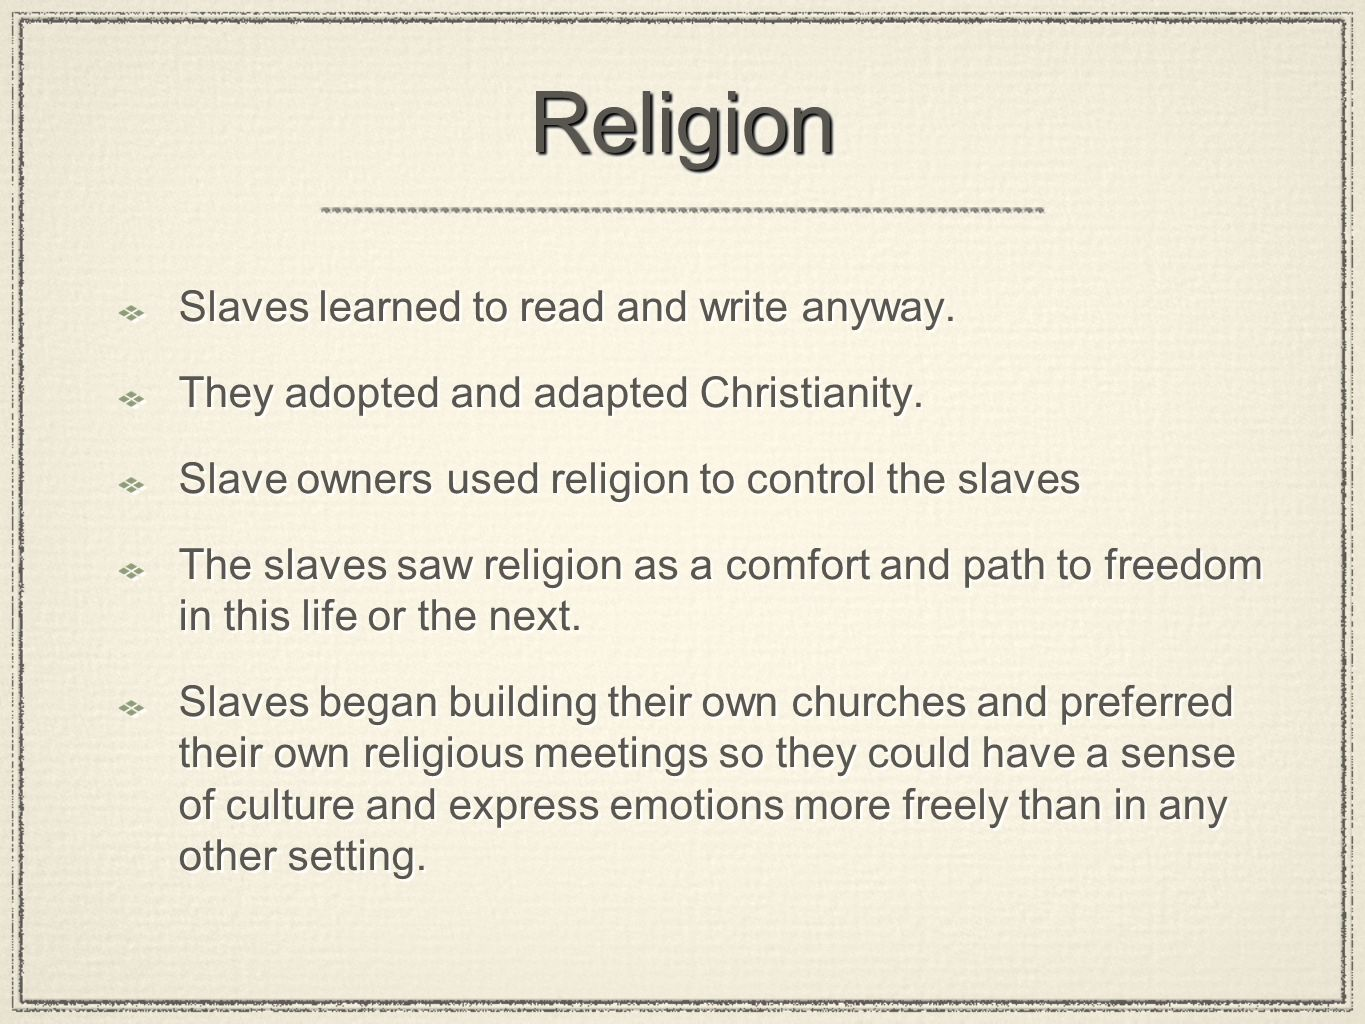 ReligionReligion Slaves learned to read and write anyway. They adopted and adapted Christianity. Slave owners used religion to control the slaves The